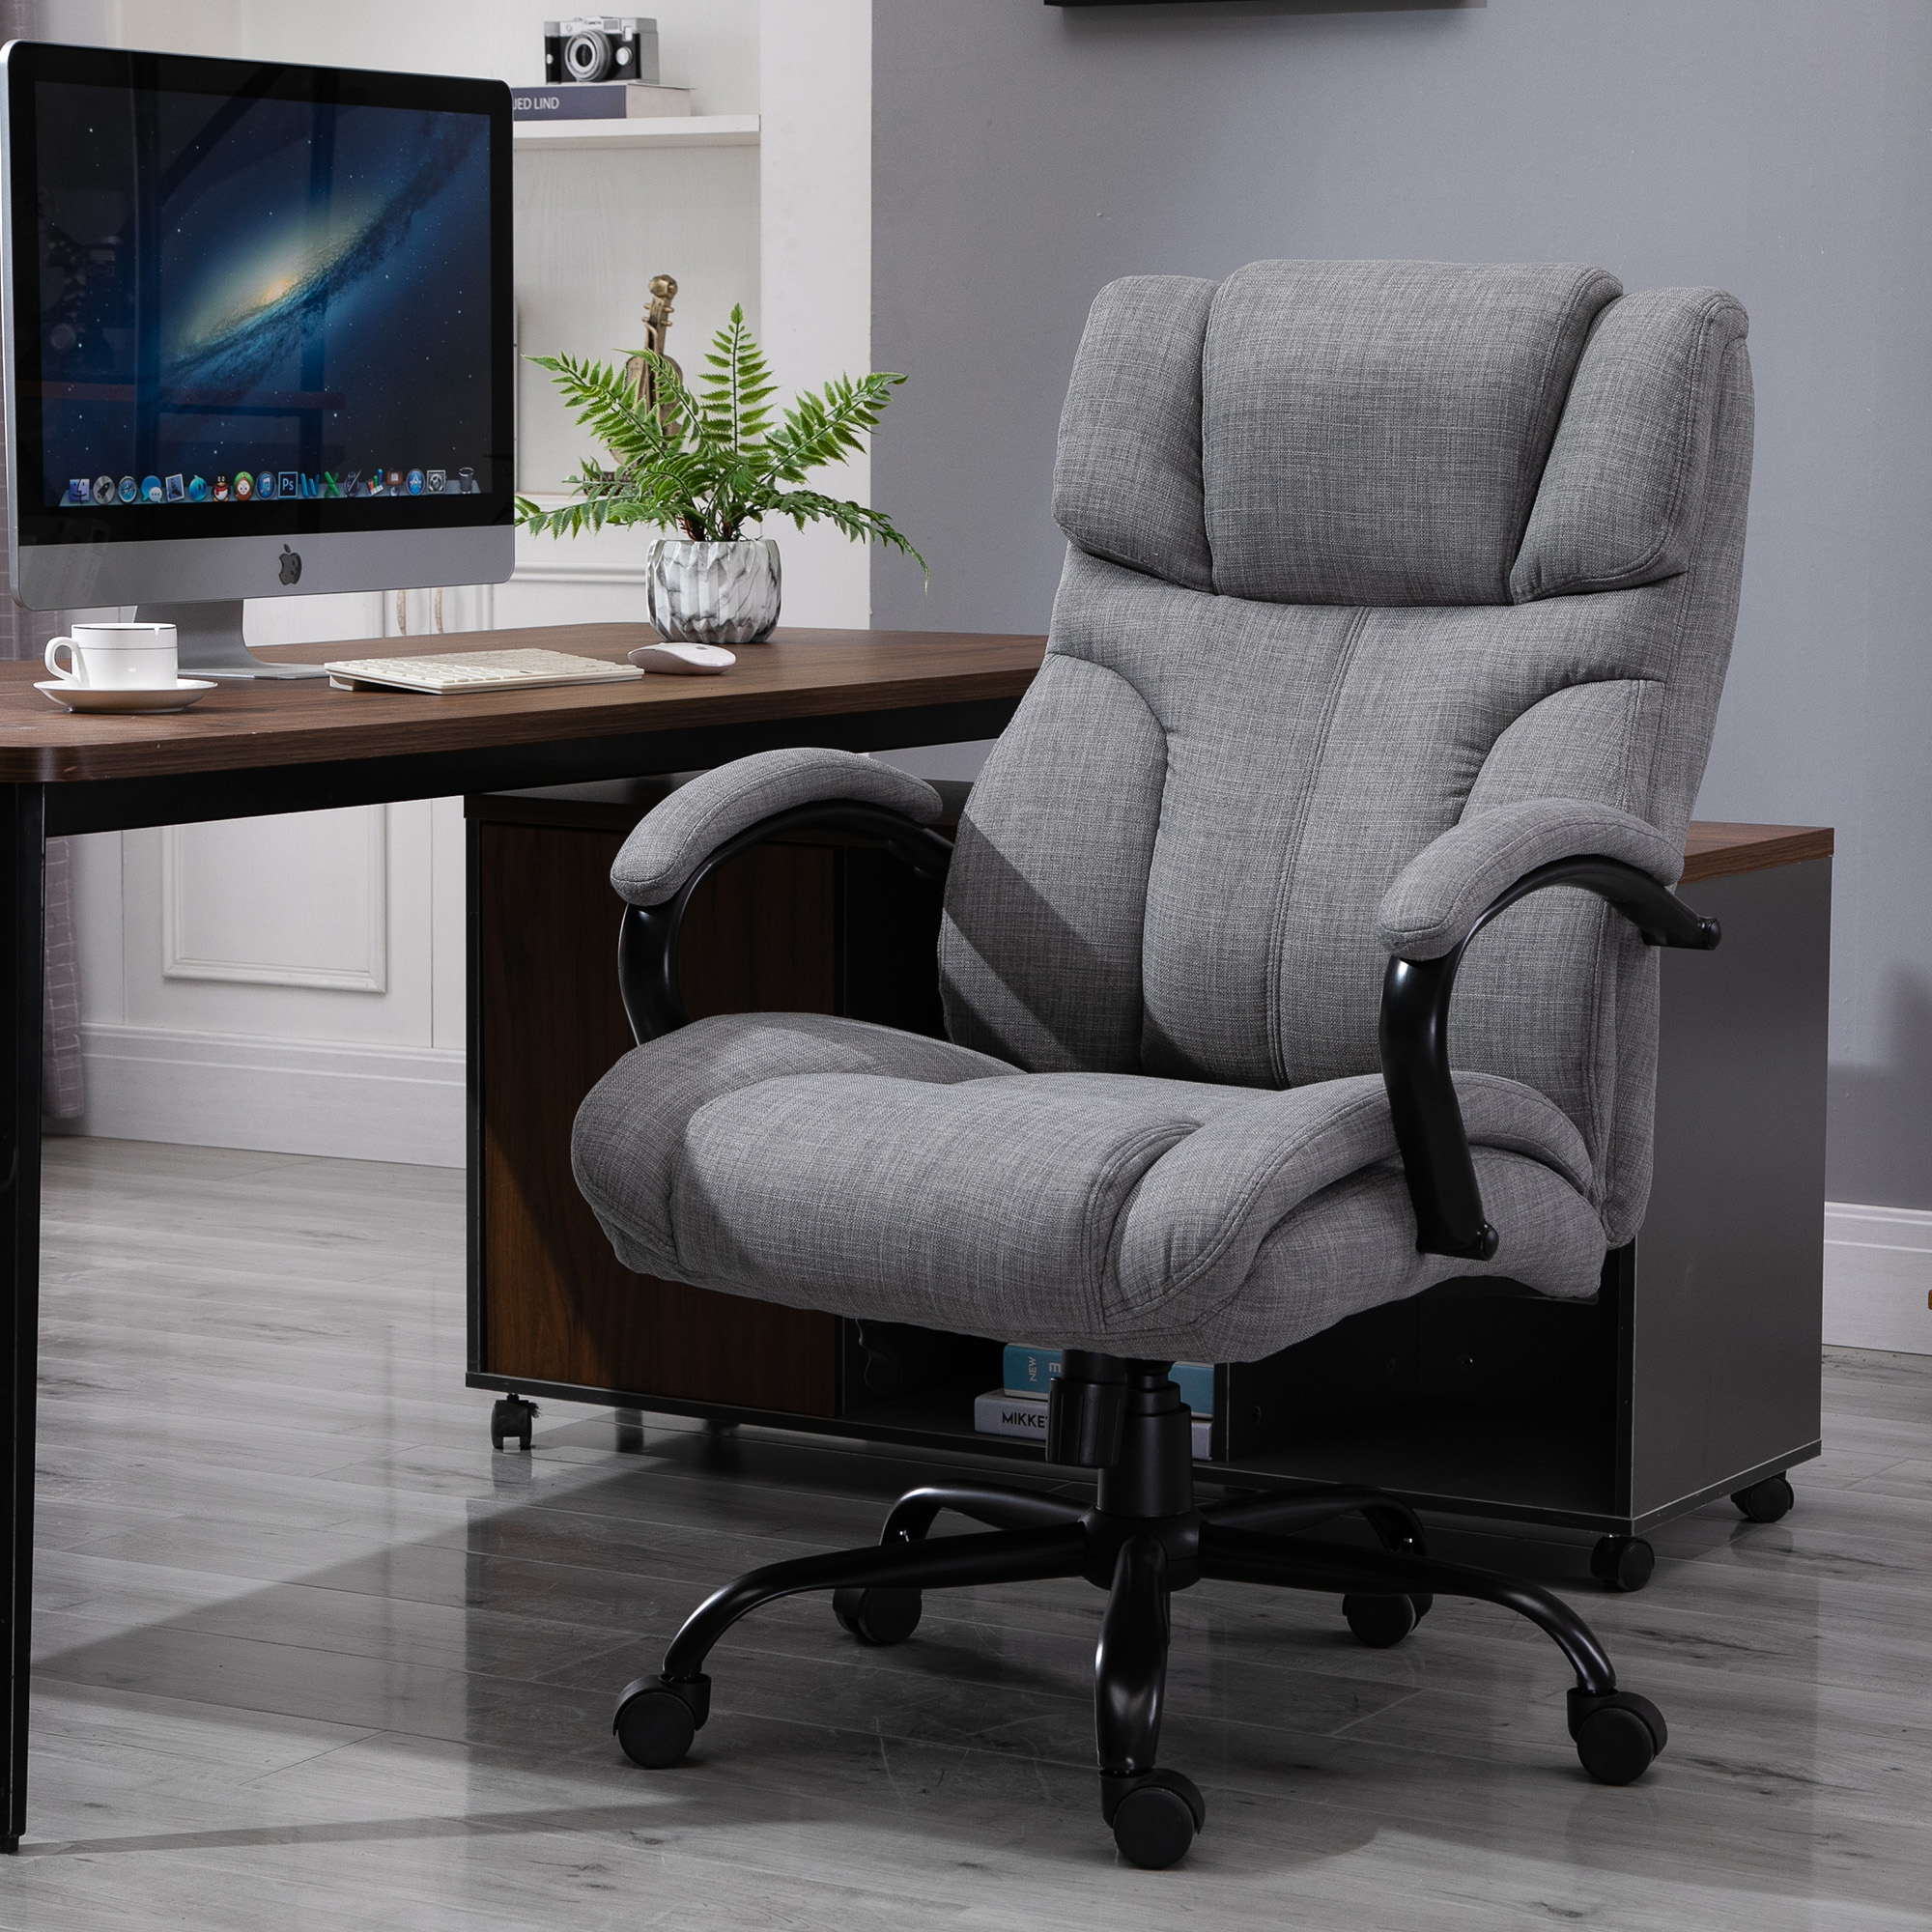 Details about Vinsetto Swivel Big/Tall Office Computer Desk Chair w/ 40  Univeral Wheels